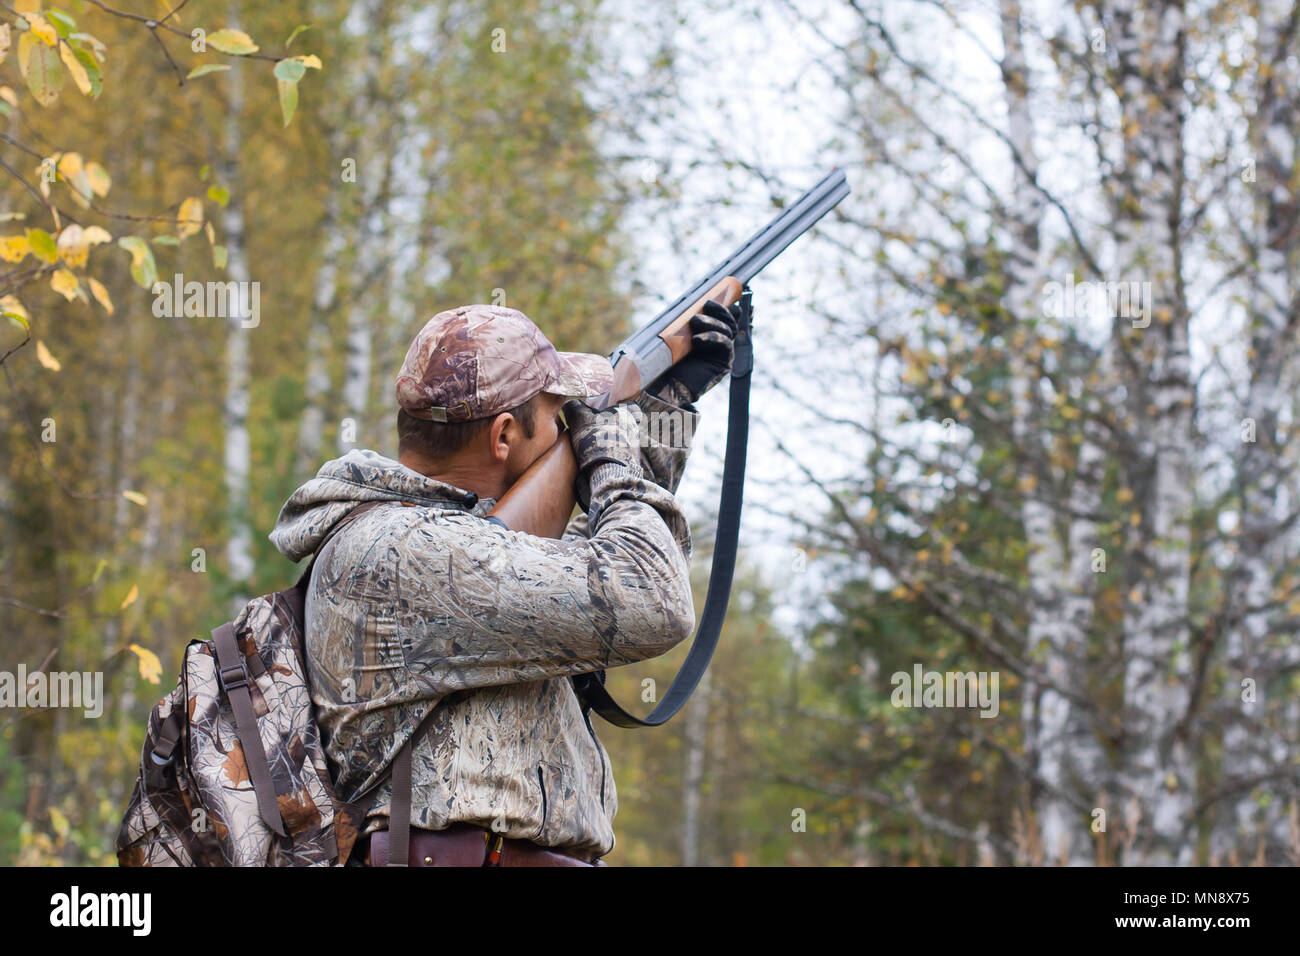 hunter taking aim in the wildfowl in the autumn forest Stock Photo